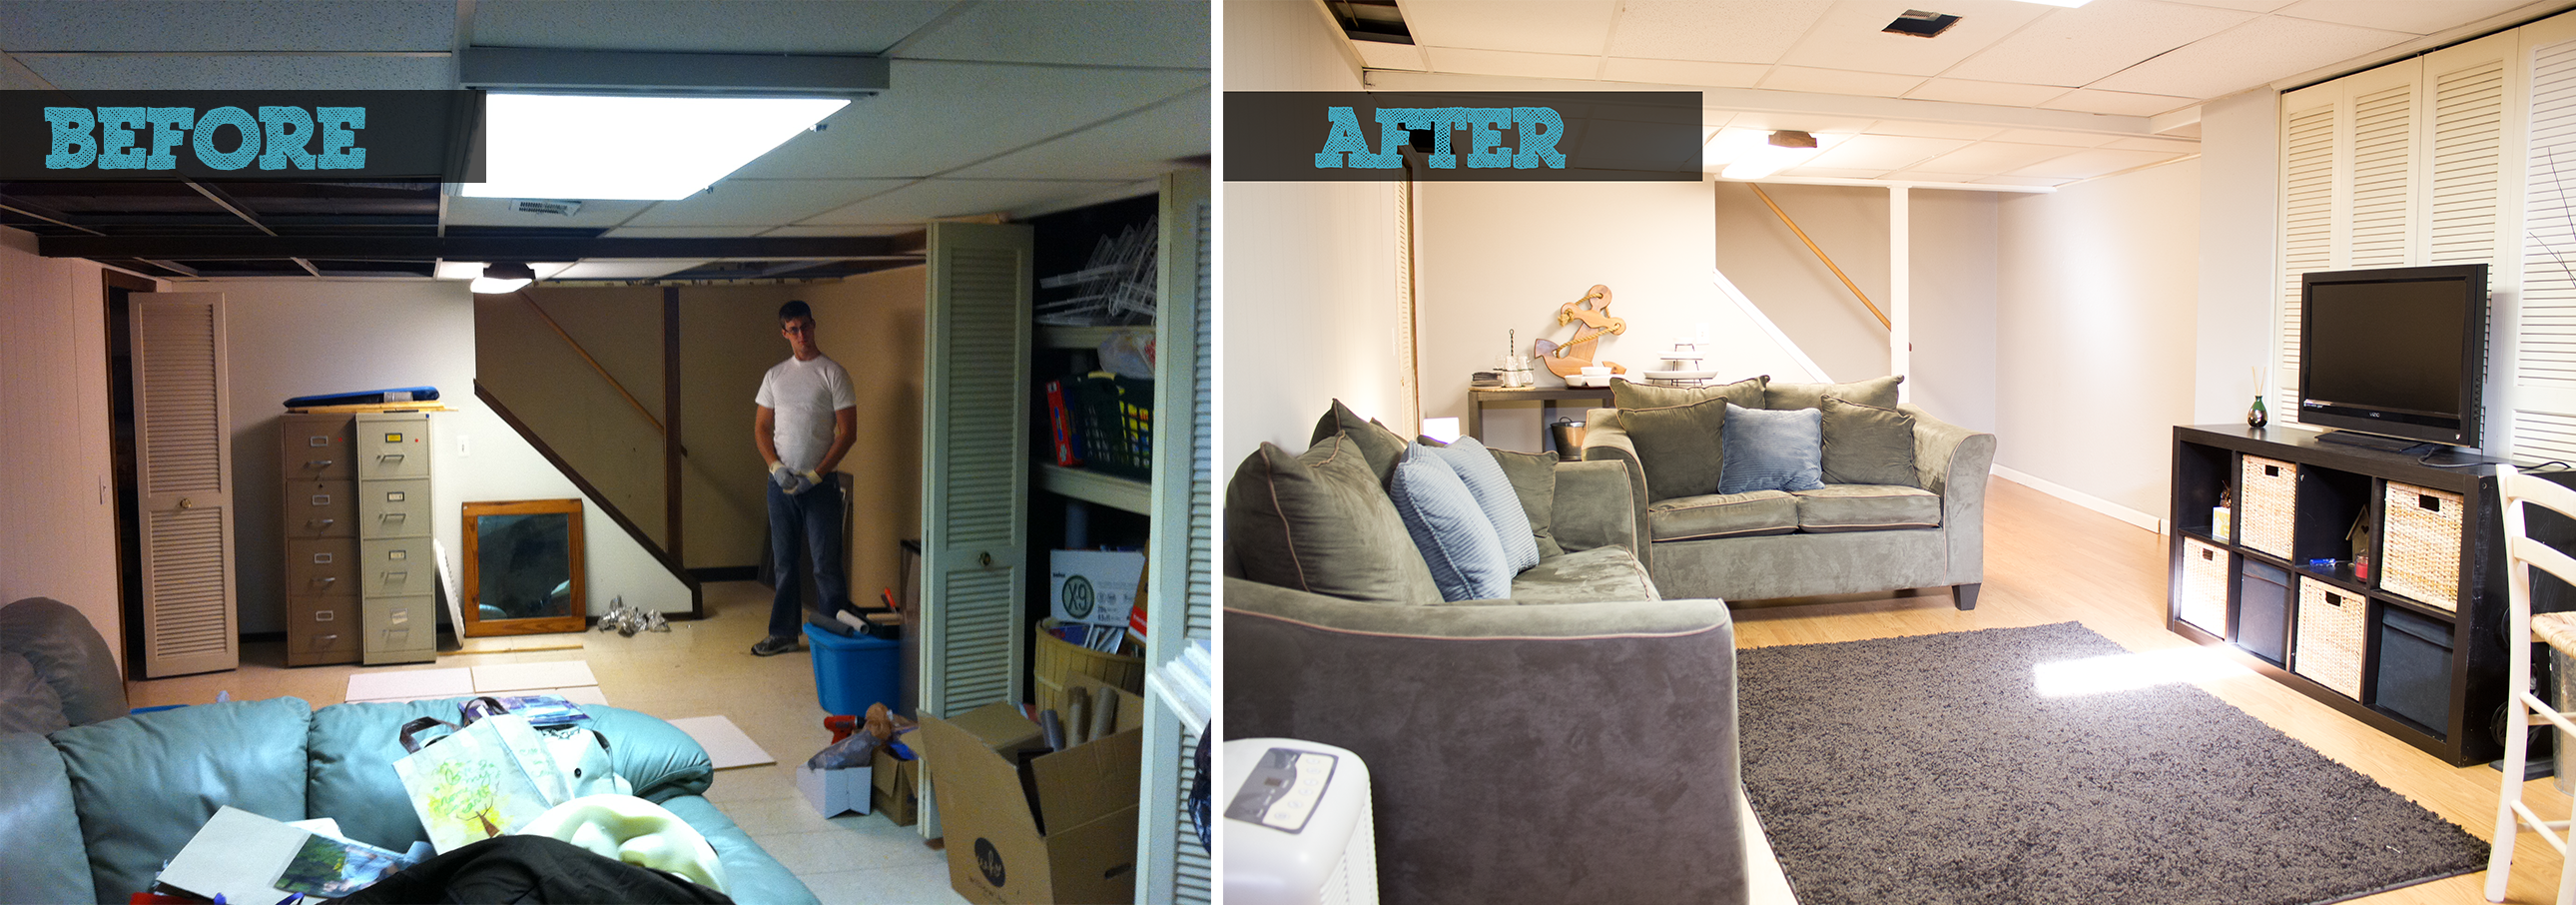 Lovely Our 6 Day Basement Makeover